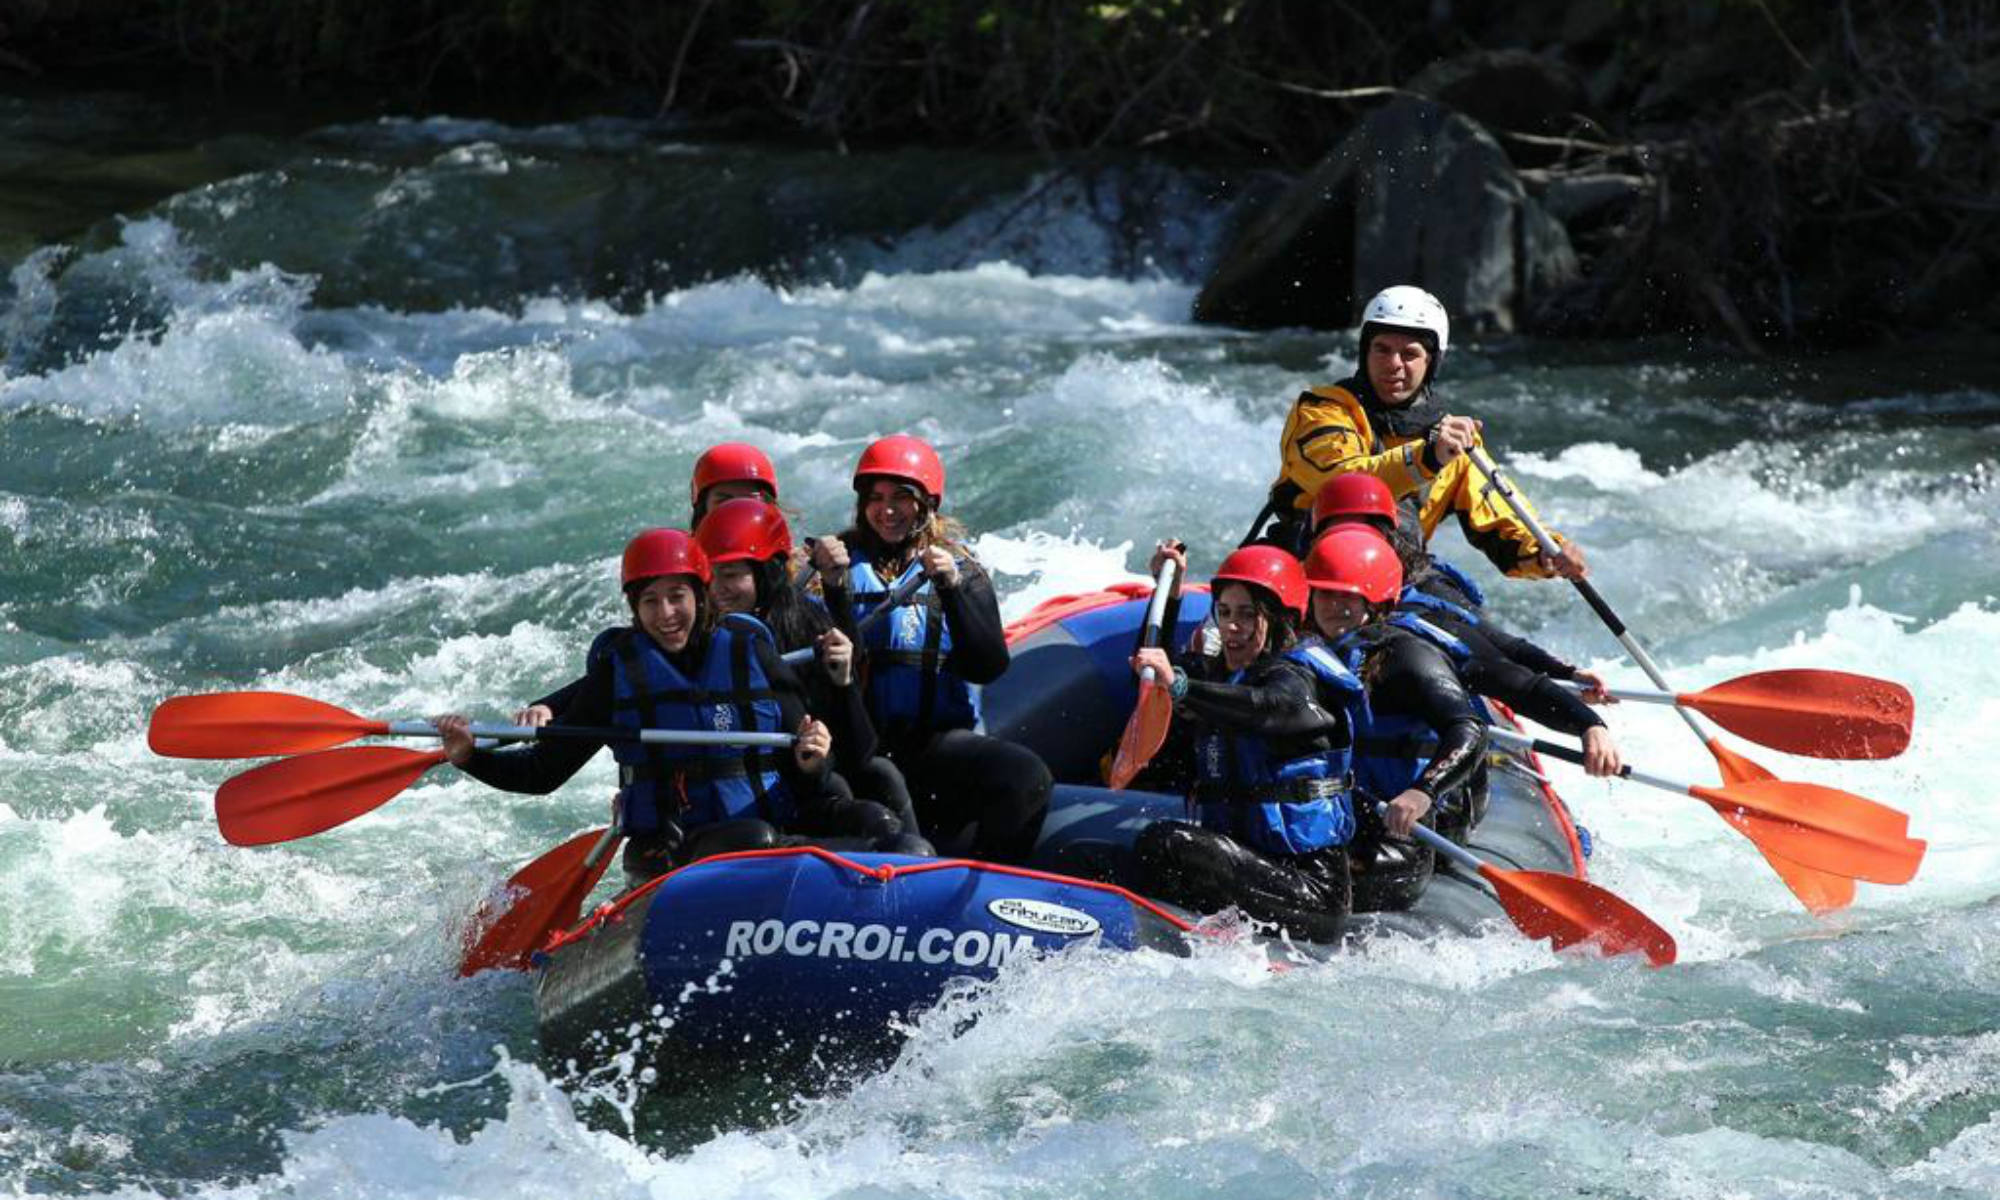 A group of people navigating their dinghy along the rousing Noguera River.